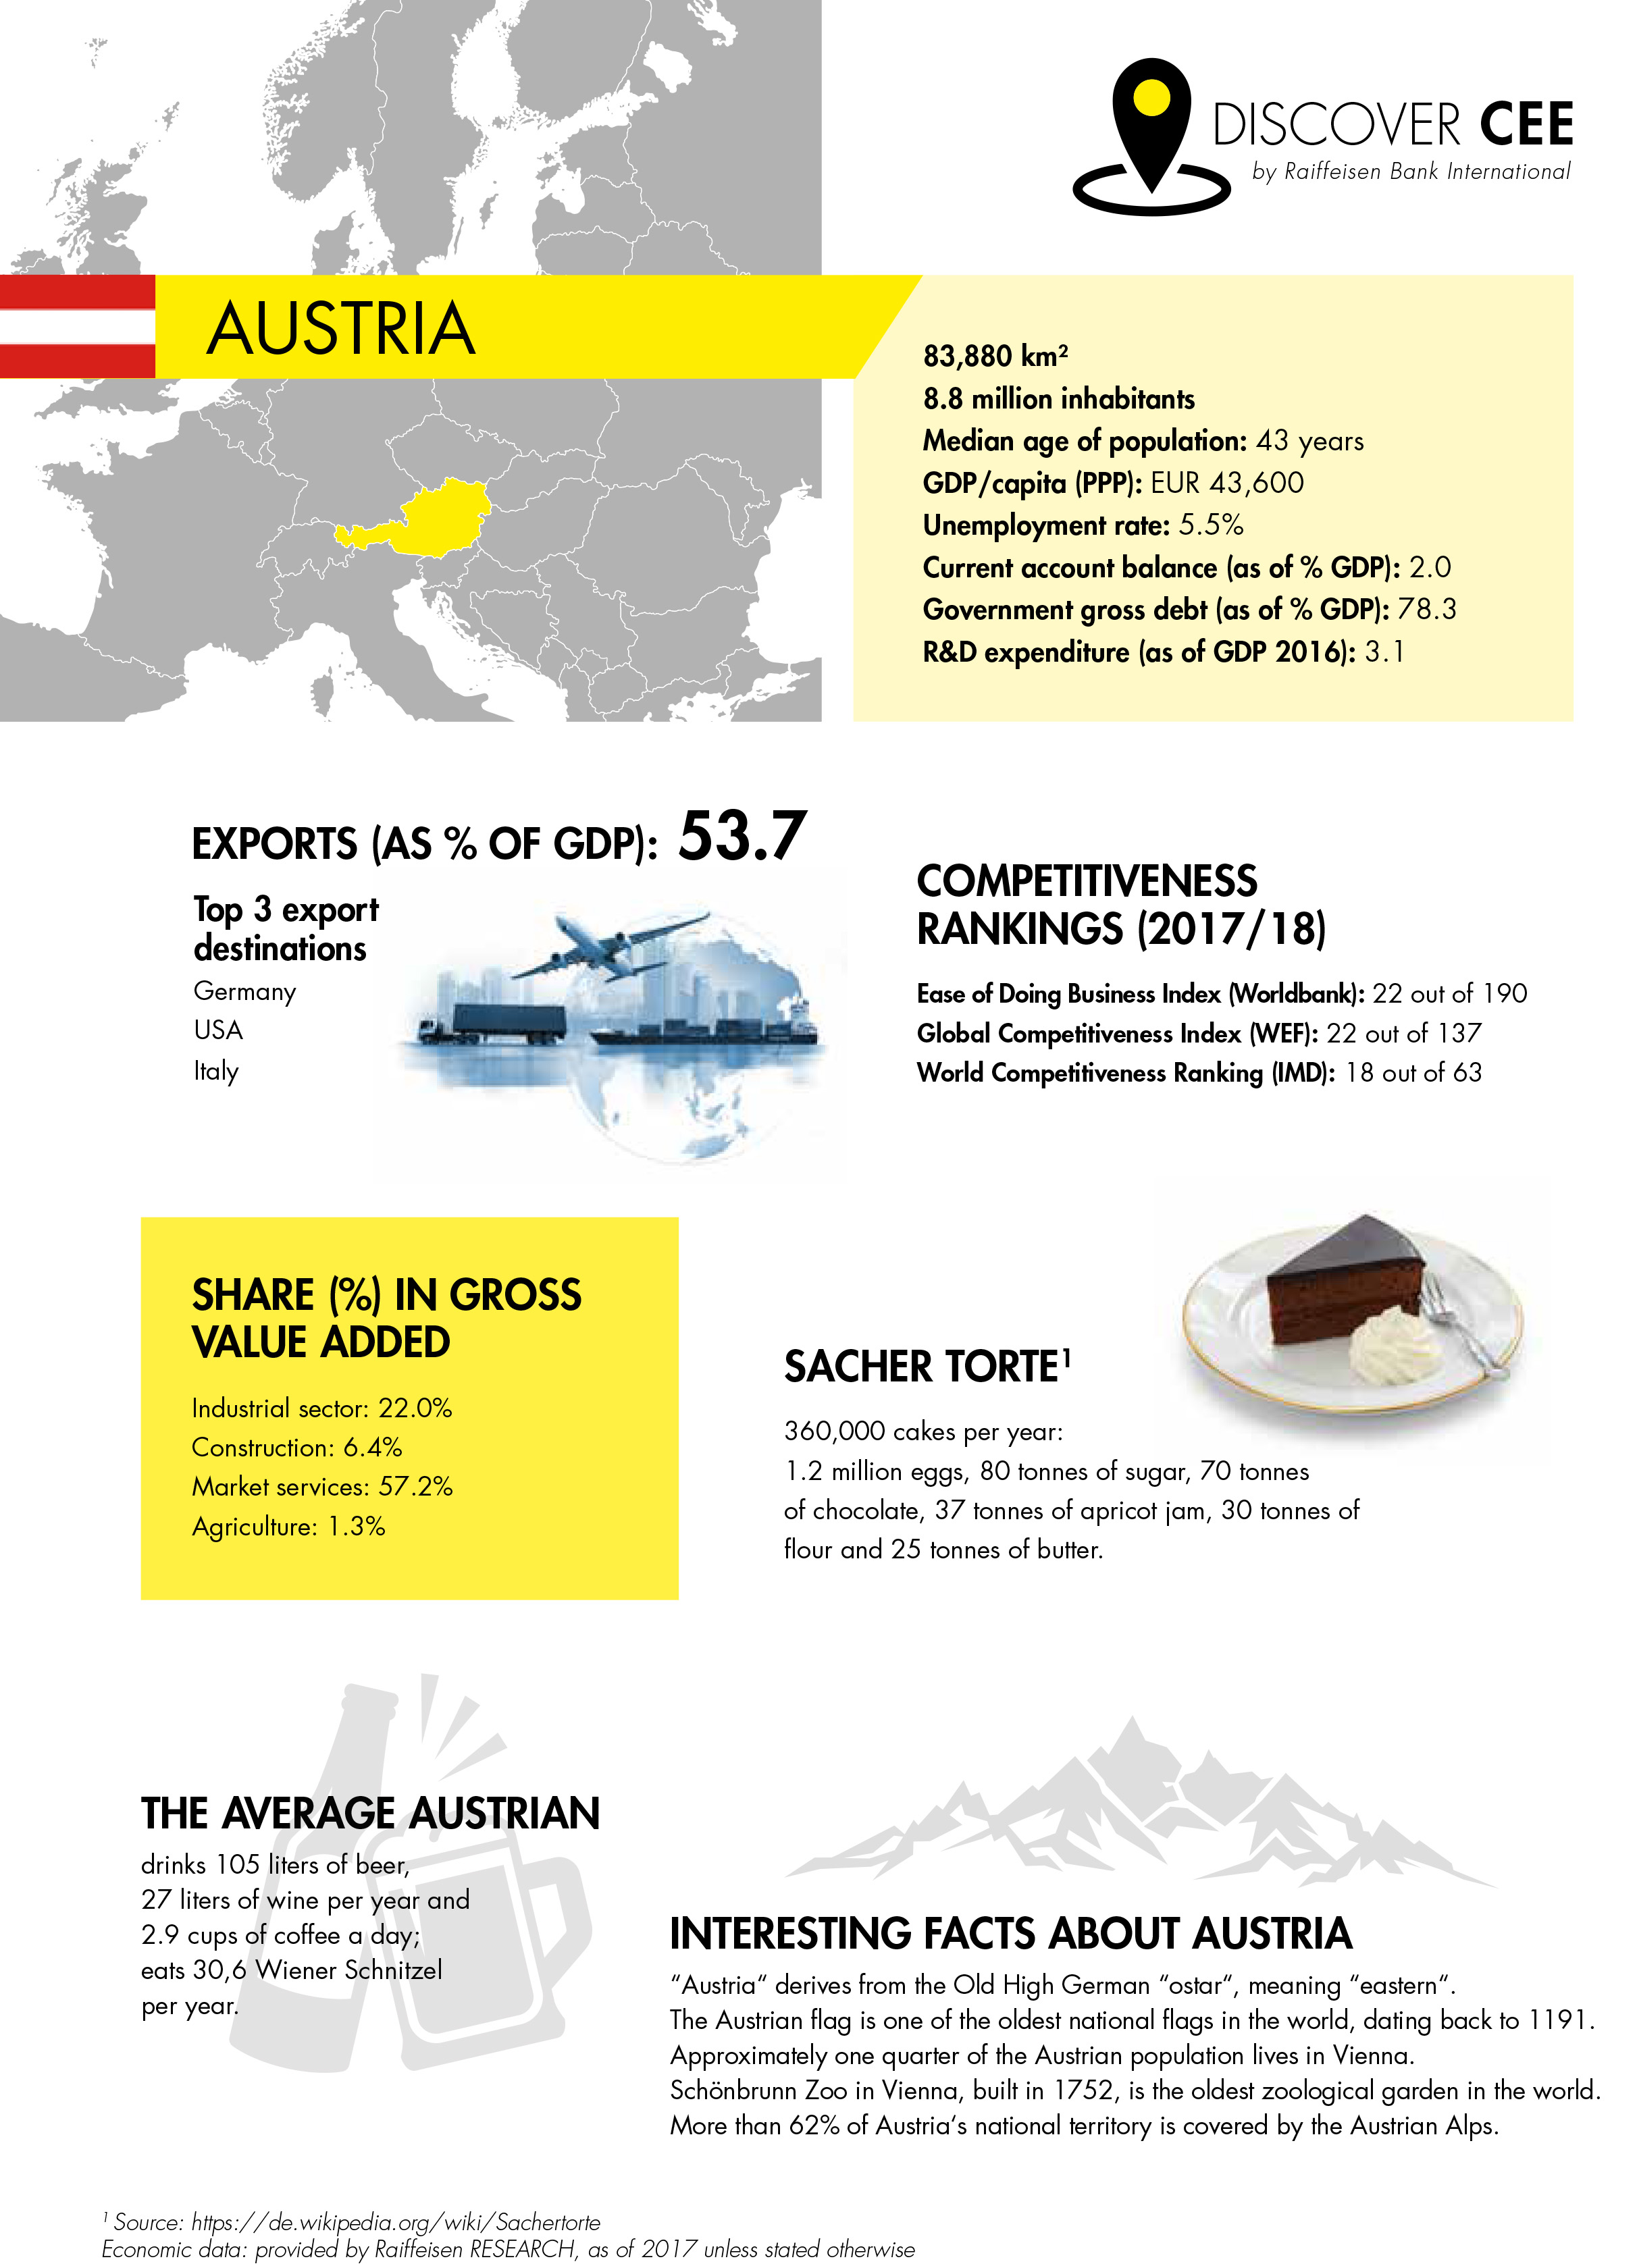 Economic and cultural facts about Austria at a glance - DISCOVER CEE